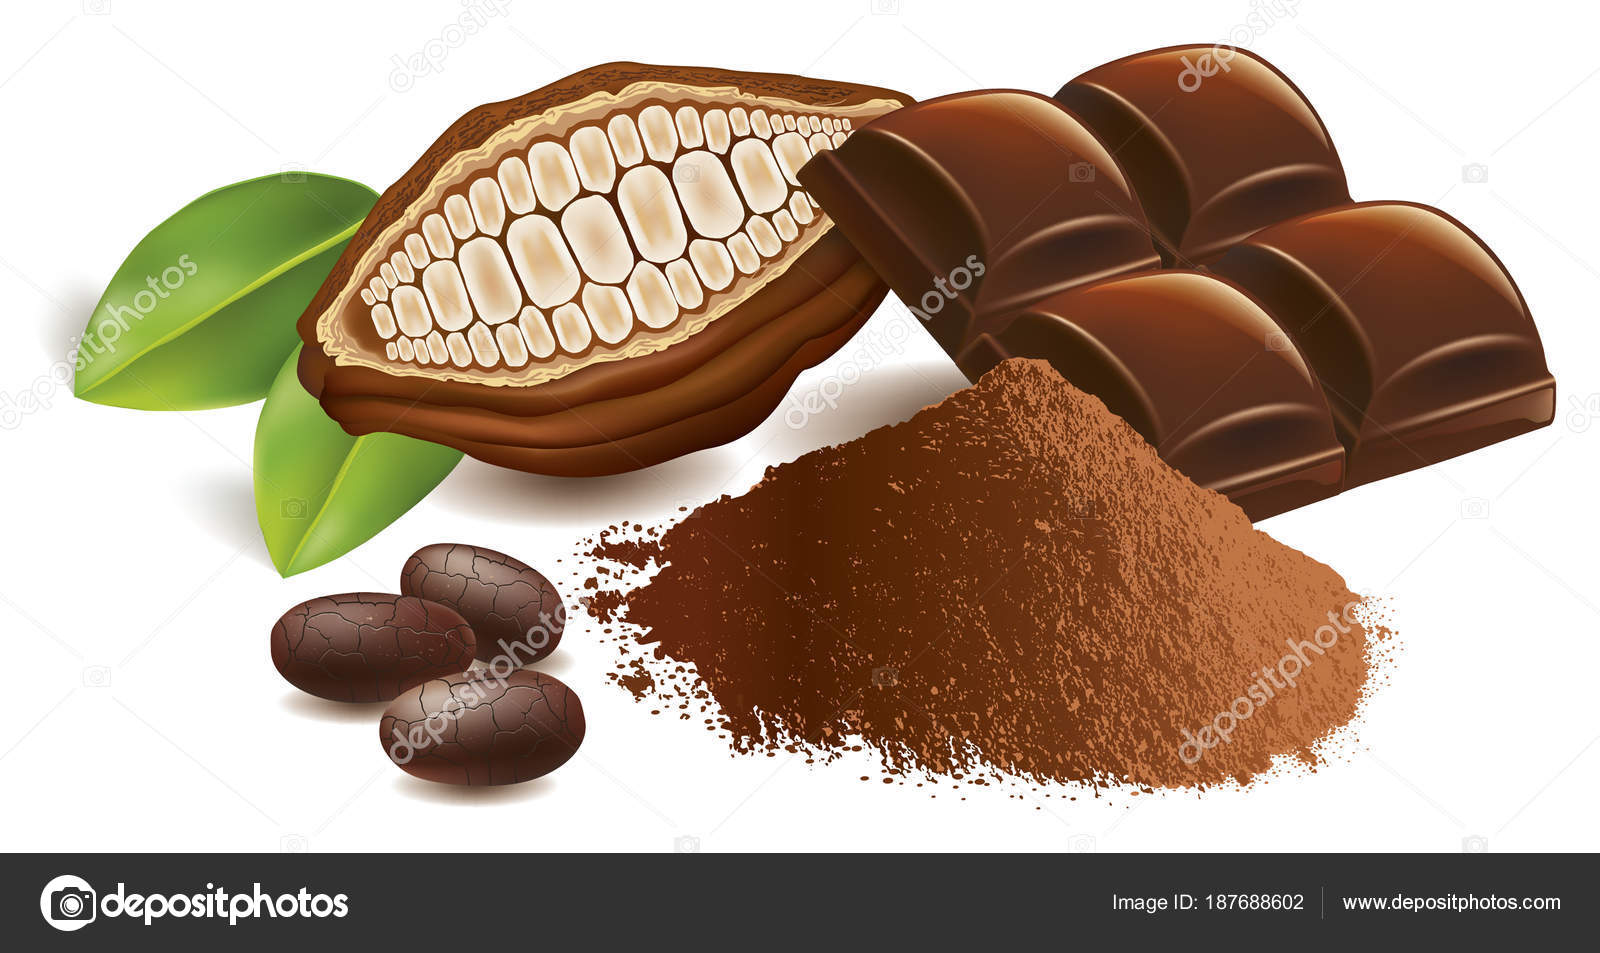 cacao beans chocolate table powder stock vector volod2943 187688602